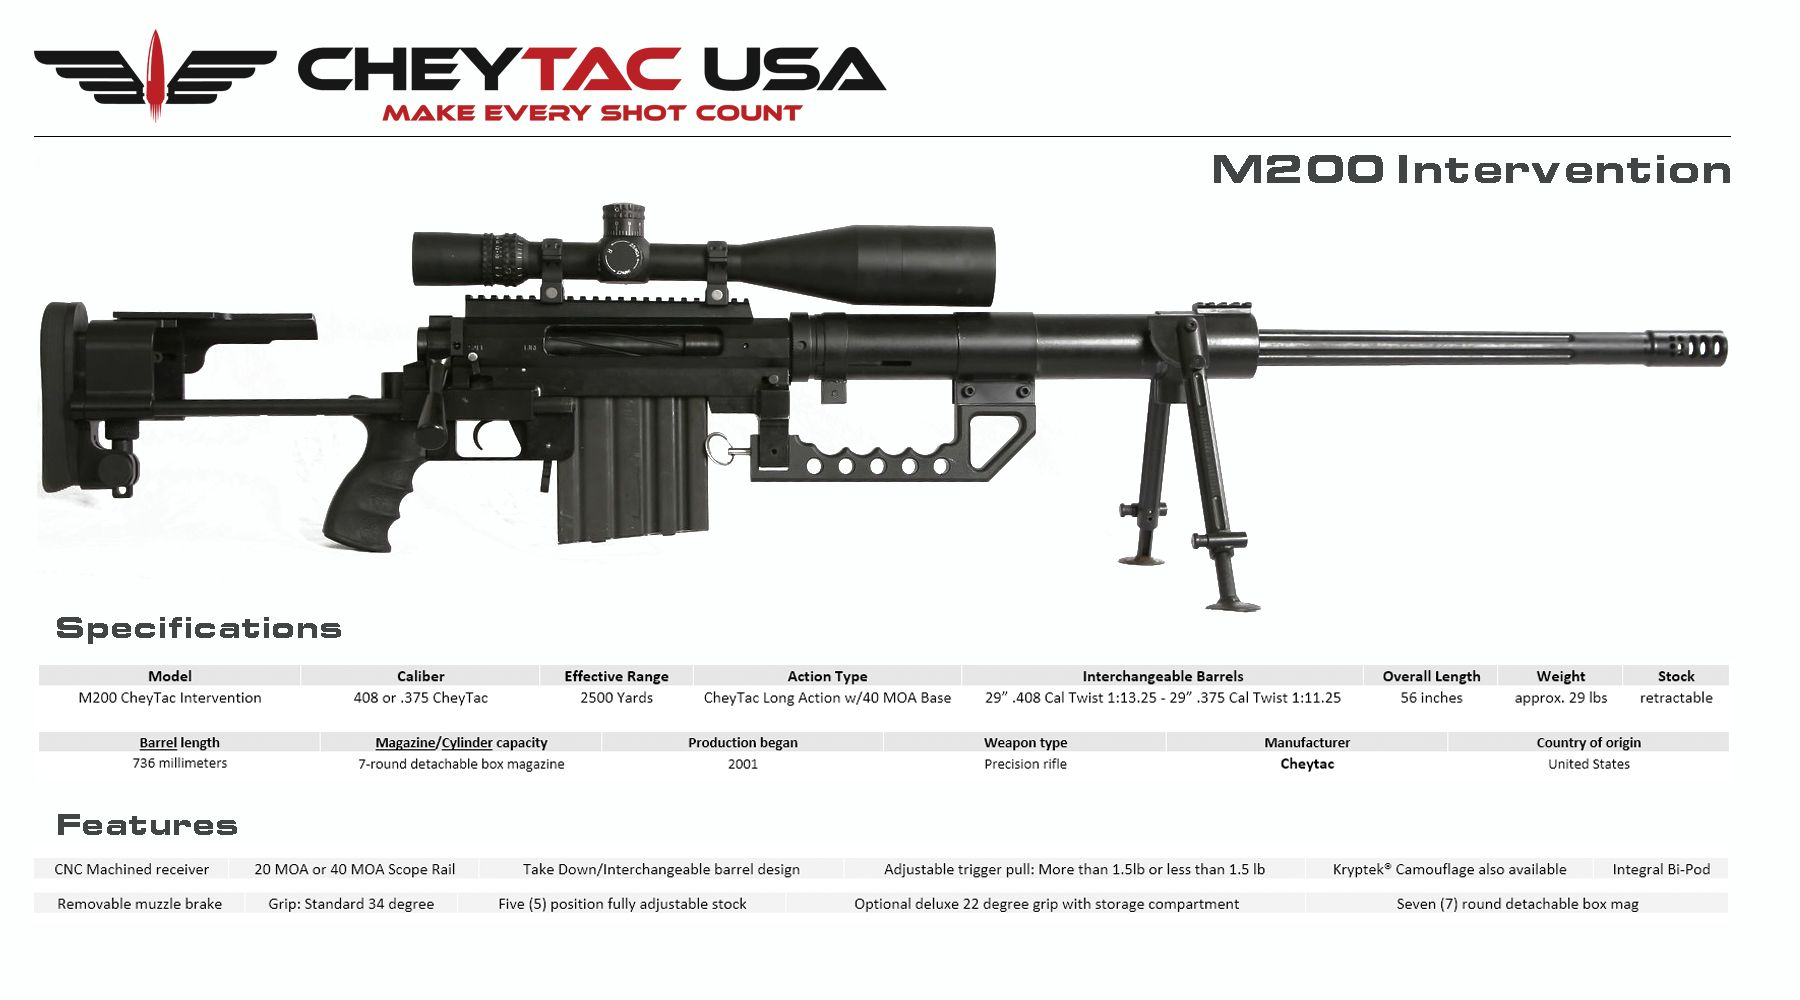 Pin by rae industries on Guns and magazine Speedloaders